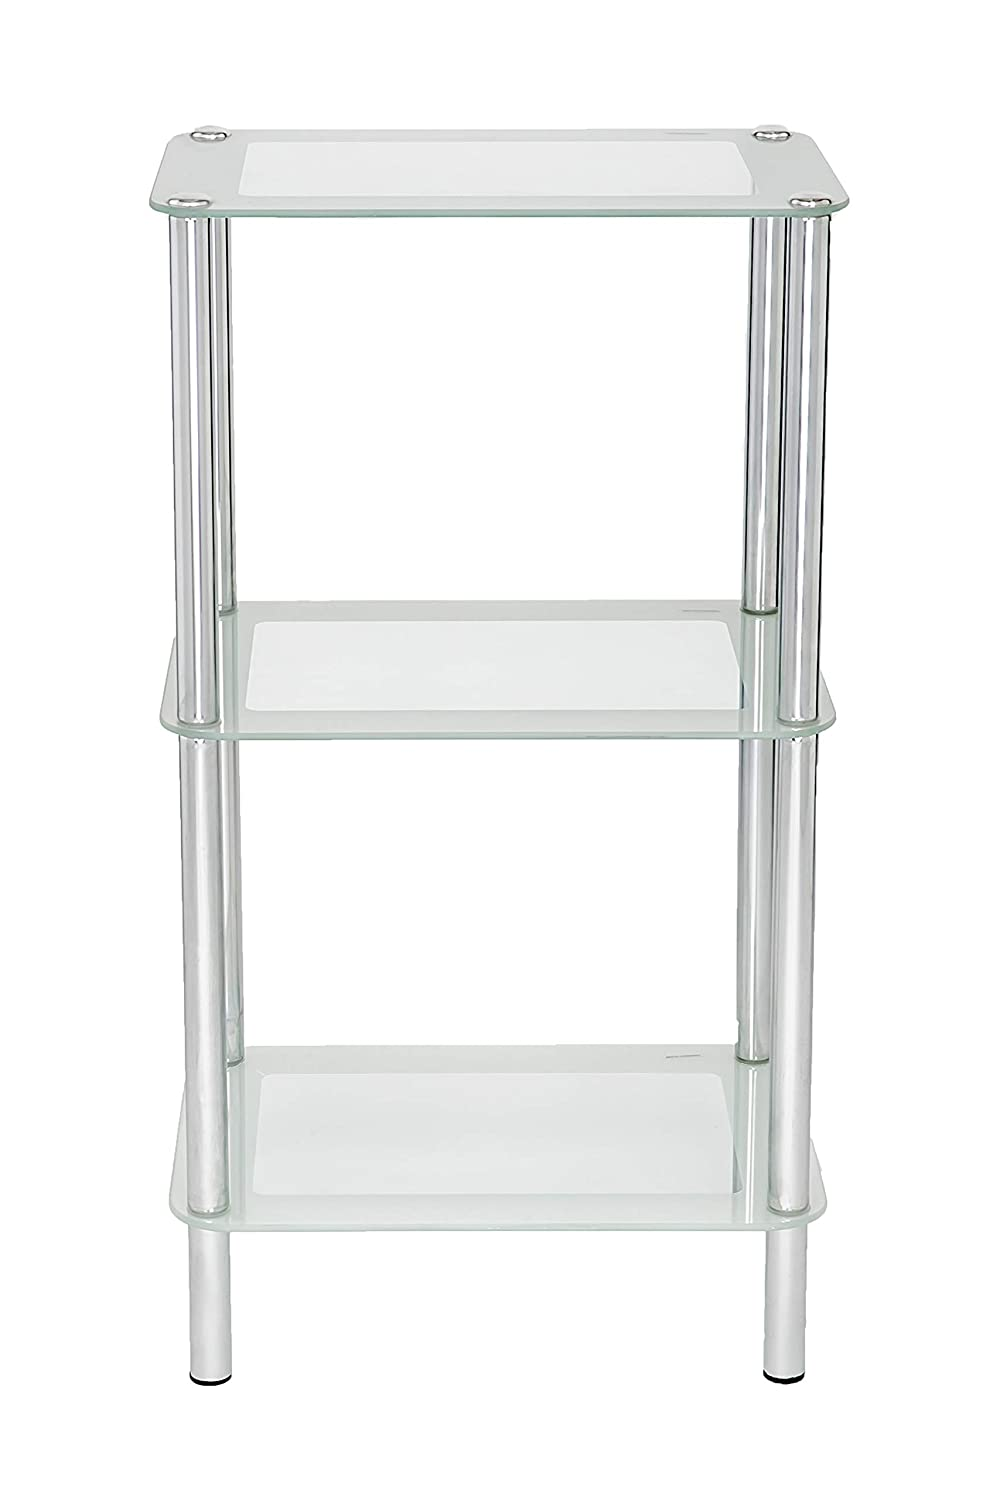 Us Office Elements 3 Tiers Rectangular Classic Design Tempered Glass Stand  With Shelves Adjustable Multi Media Great Feature For Bathrooms And Kitchen